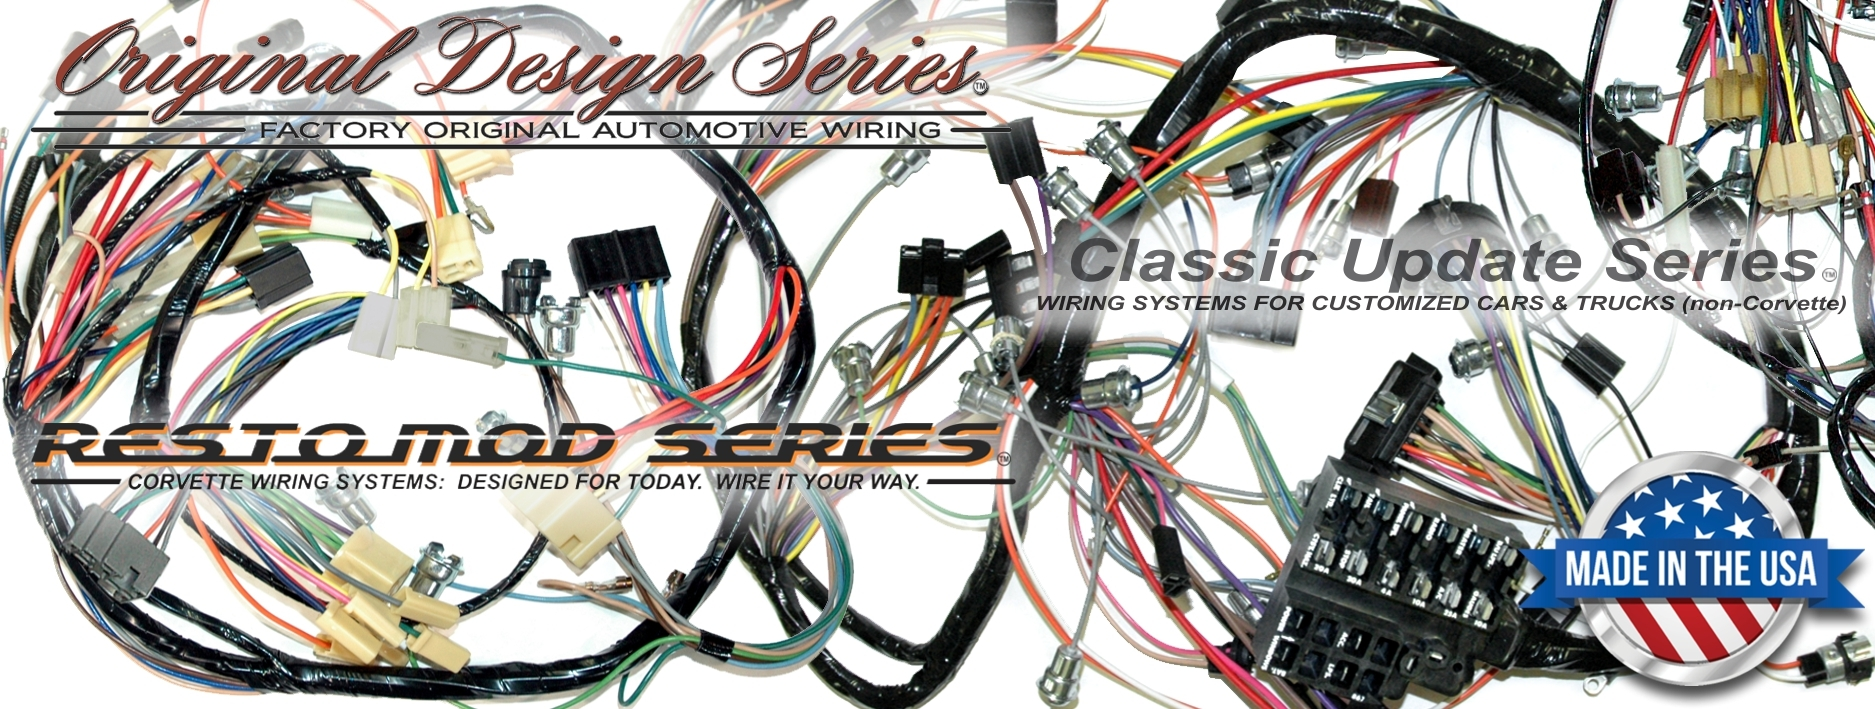 Exact OEM Reproduction Wiring Harnesses and RestoMod Wiring Systems ...